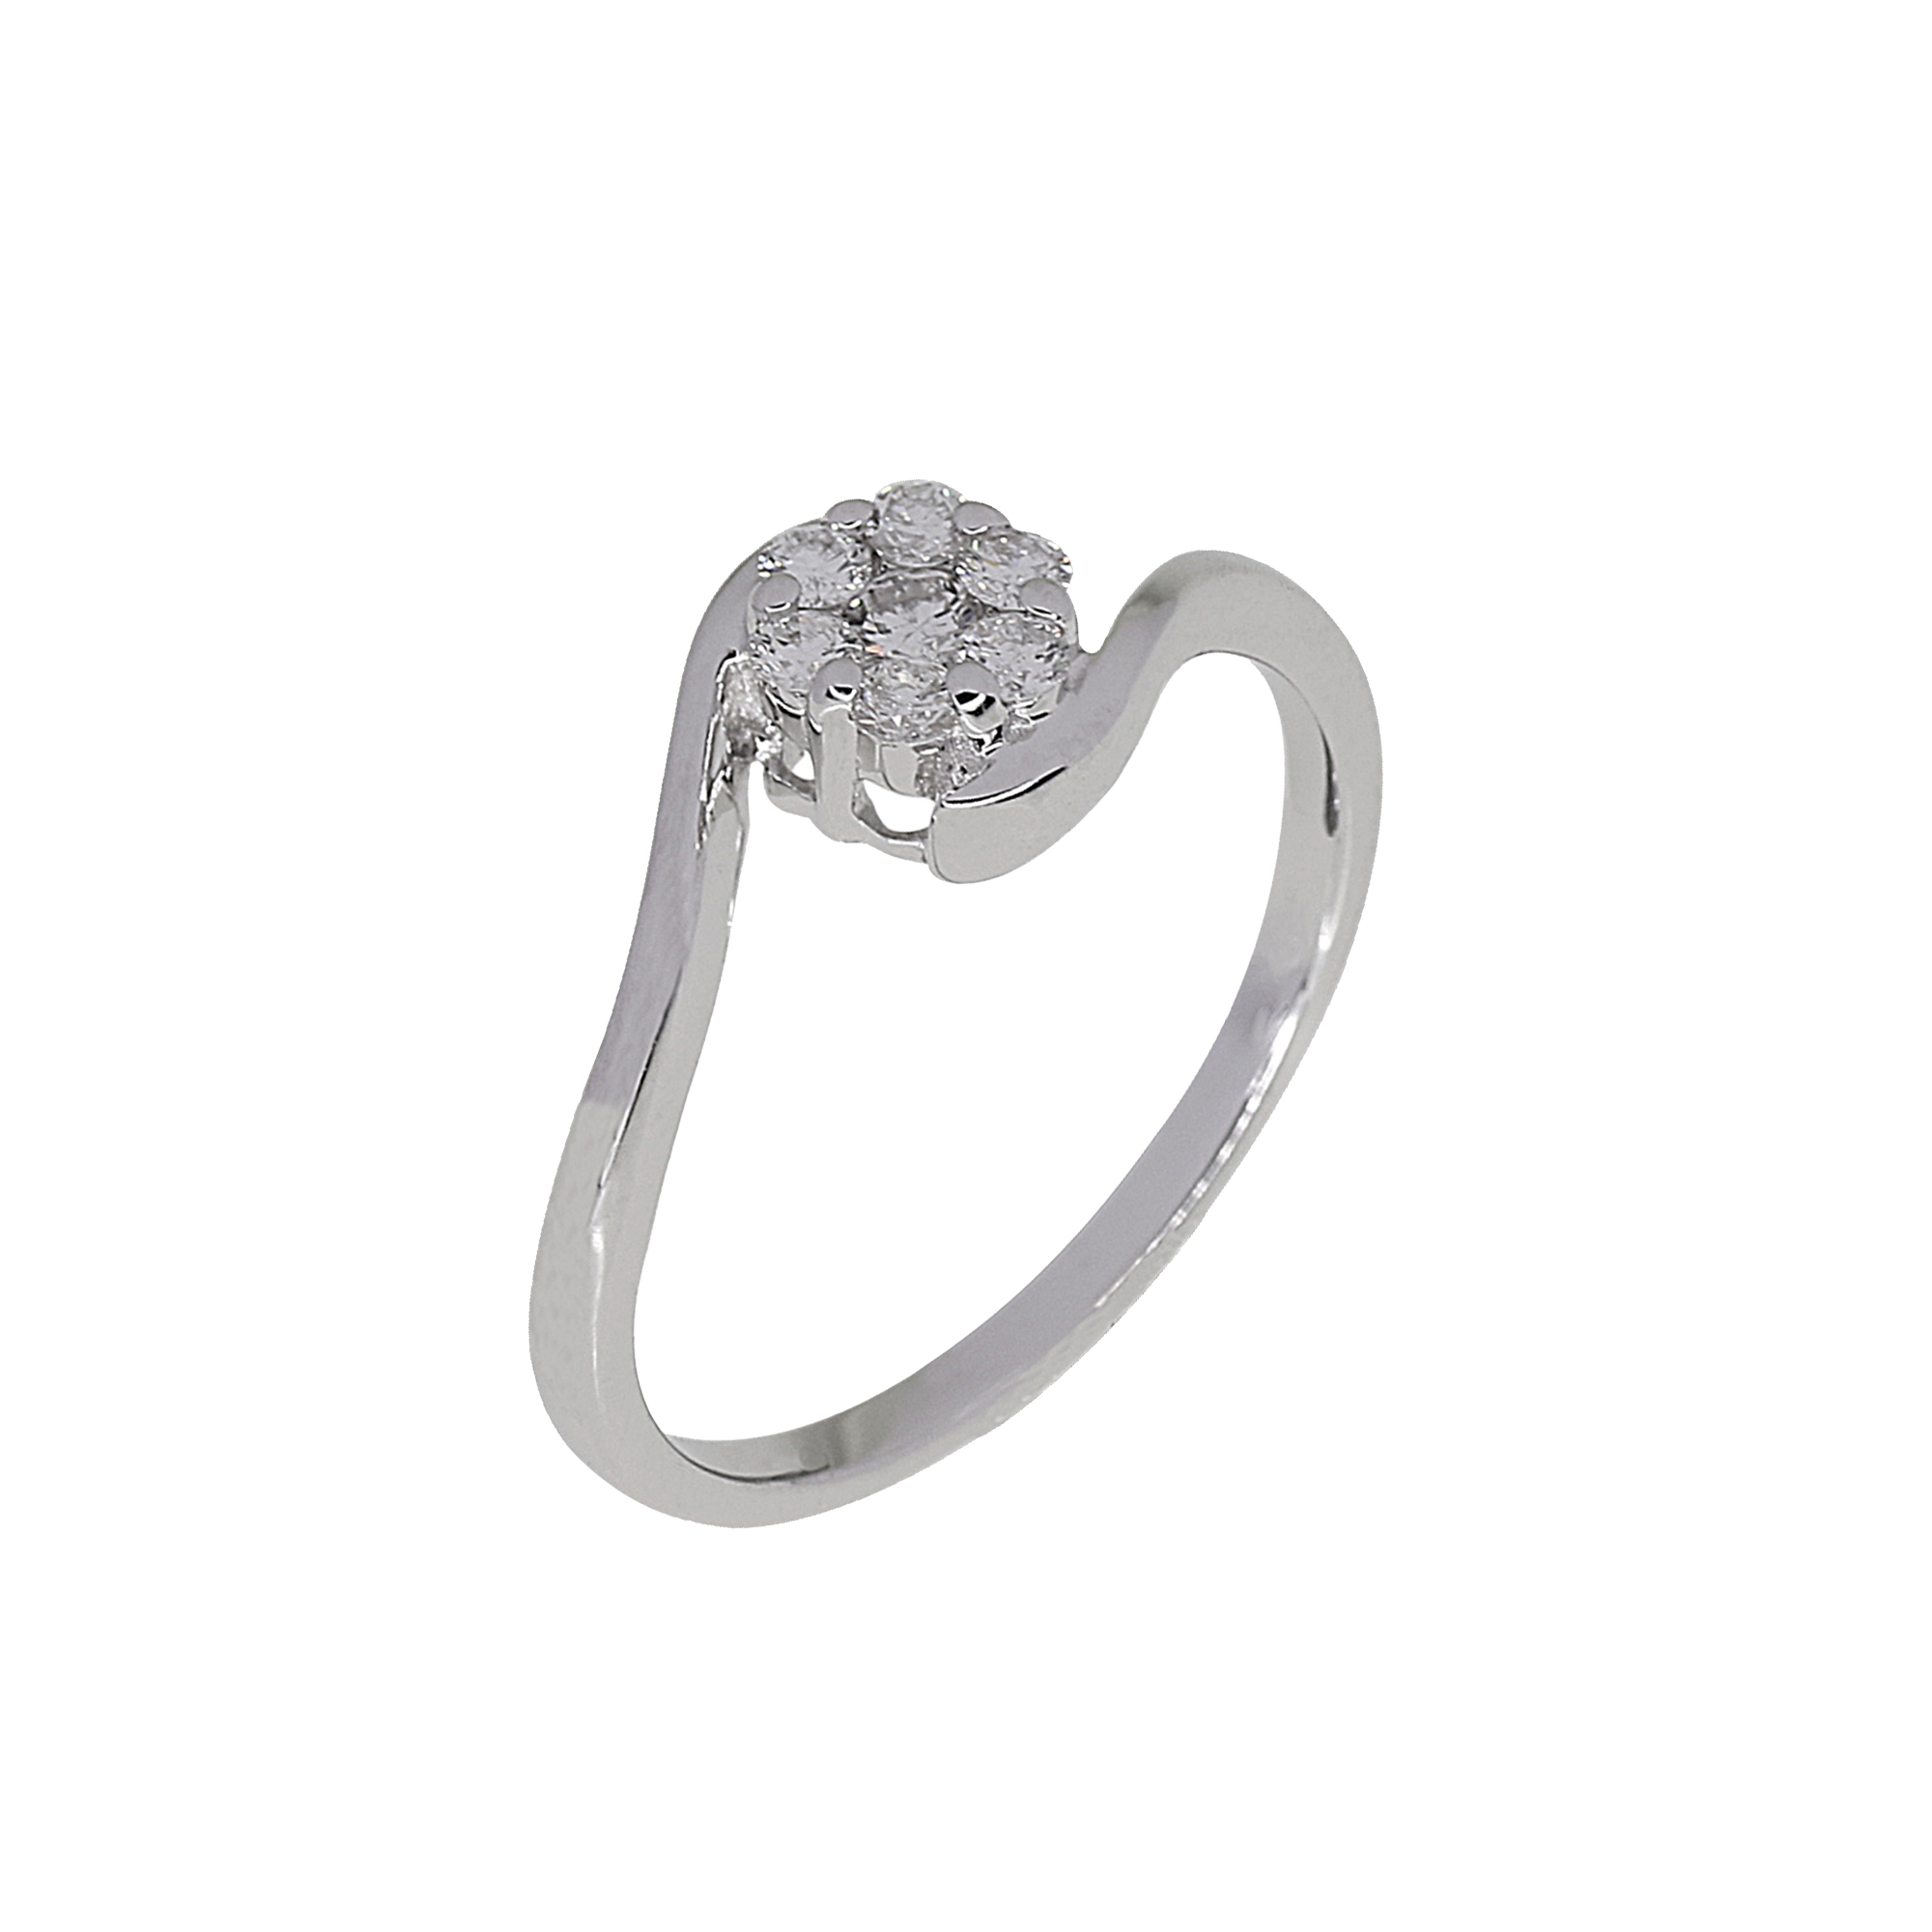 Fiorlini Ring PSR0011